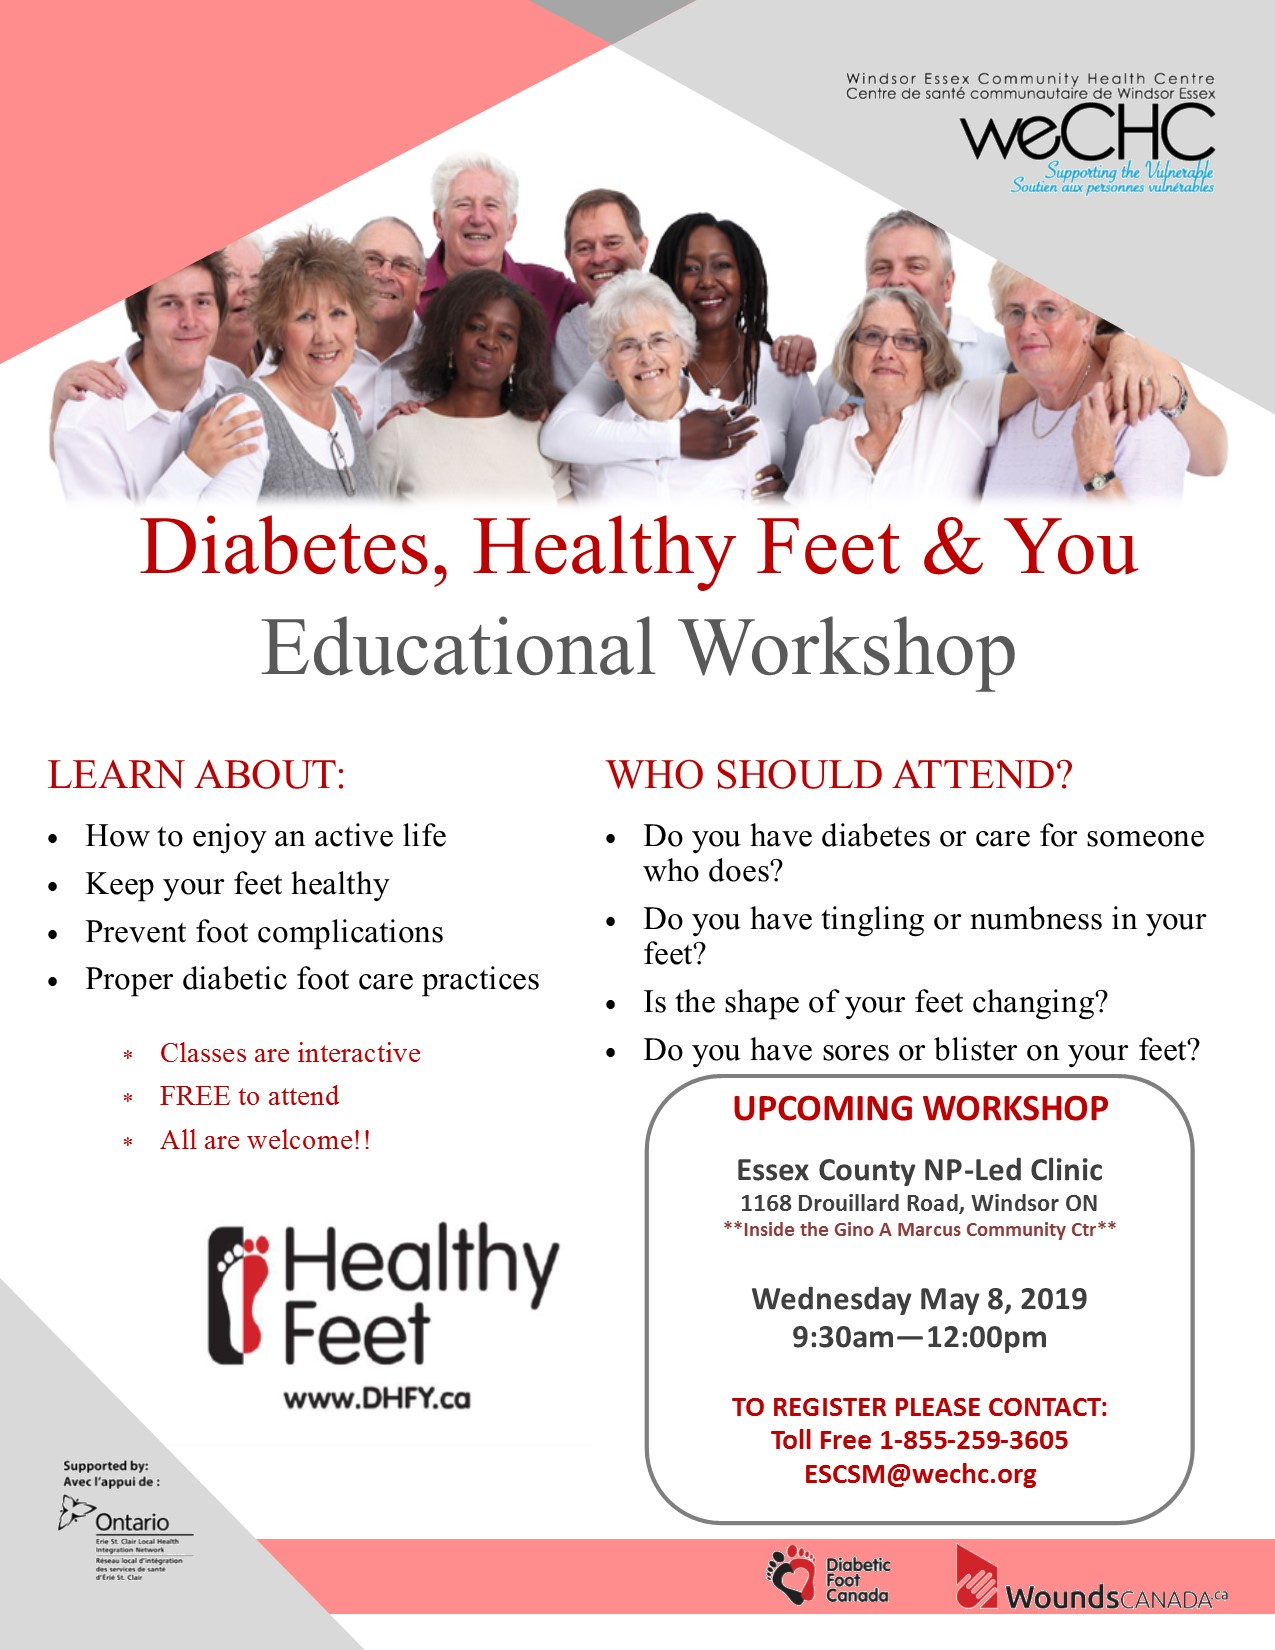 DIABETES, HEALTHY FEET and YOU - ECNPL Clininc Windsor @ Essex County NP-Led Clinic (Windsor)